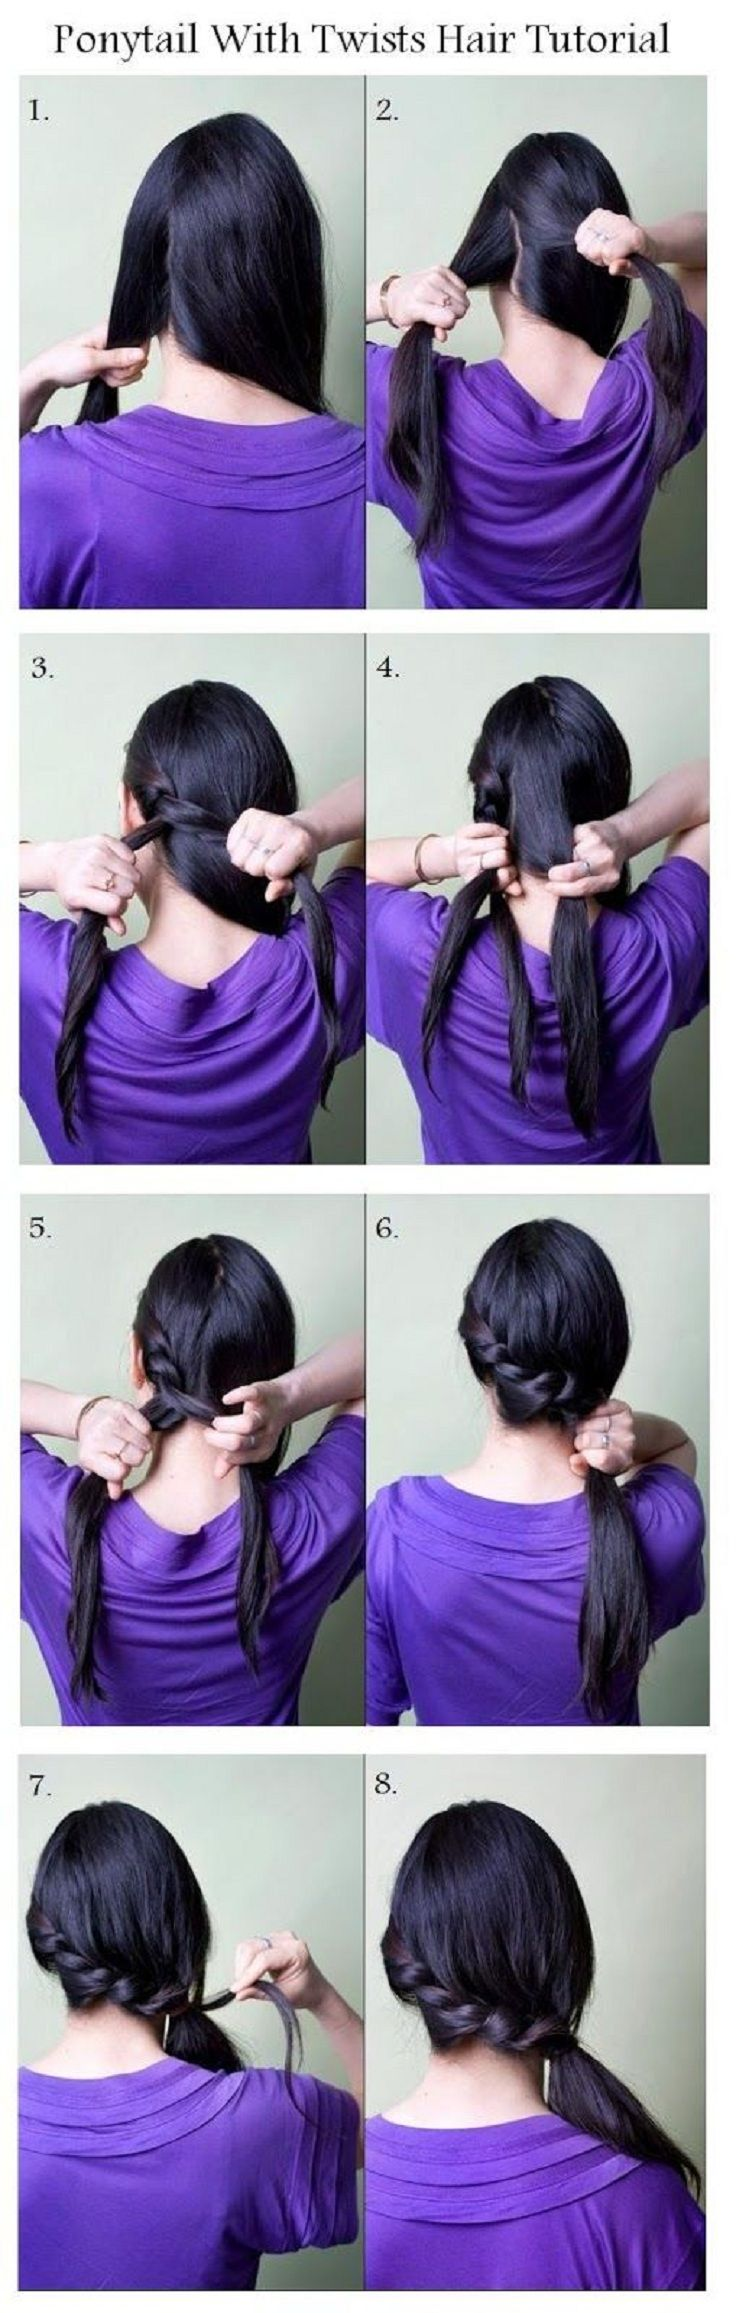 TOP 10 Hairstyle tutorials for this fall DIY long hair braid, updo, formal, elegant, classic.